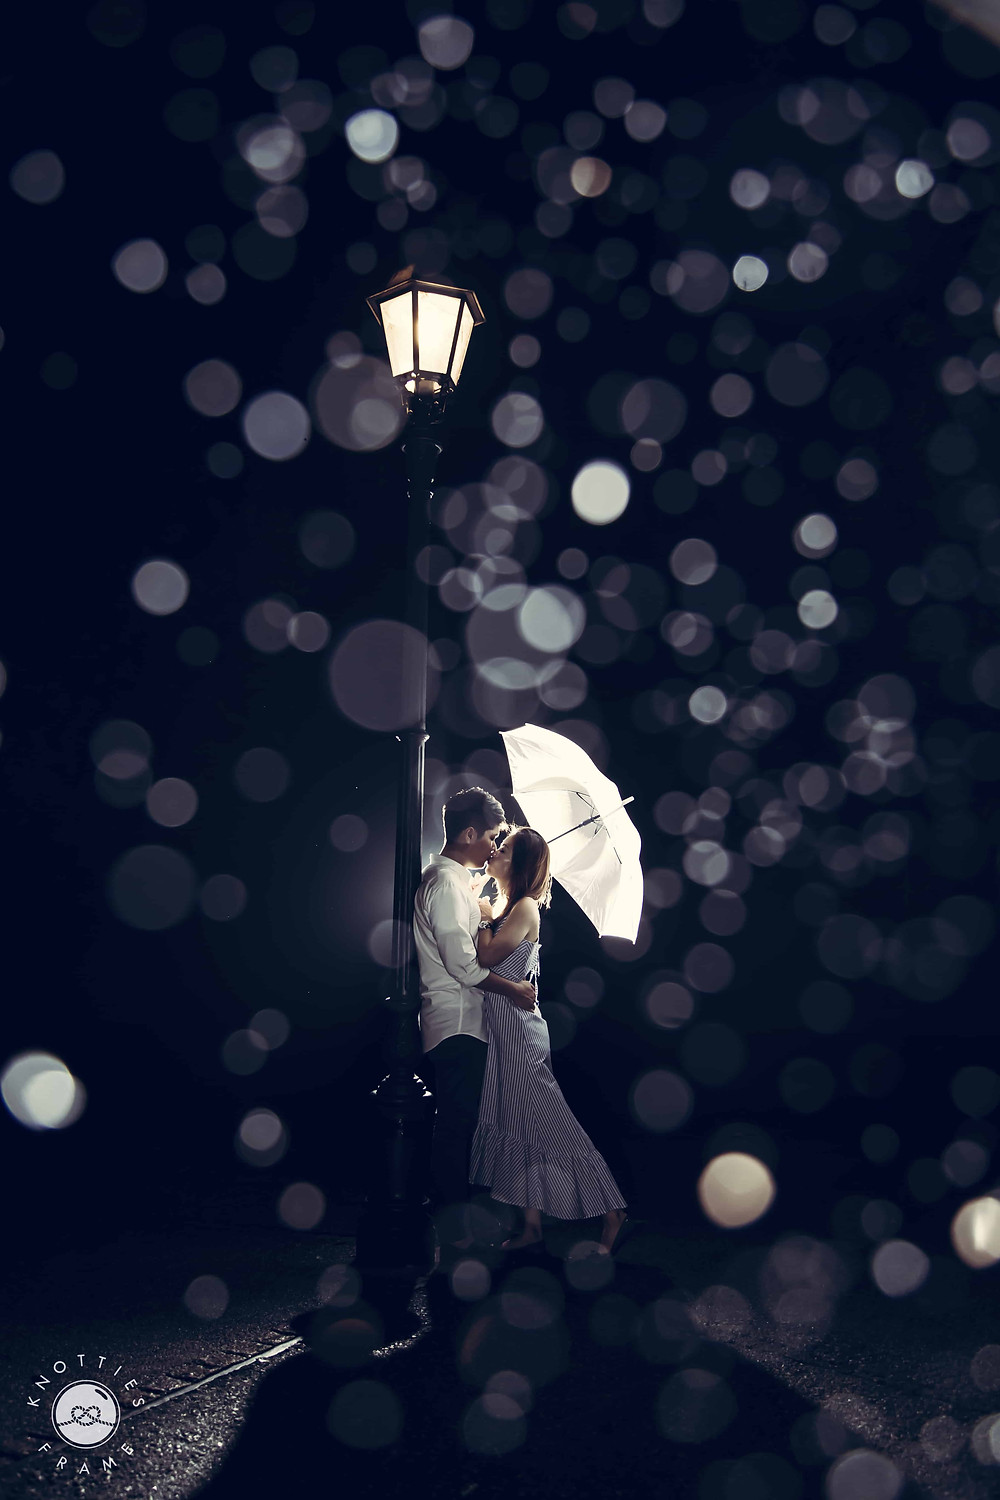 Night Wedding Photography: Couple standing under a lamp post in the rain holding umbrella